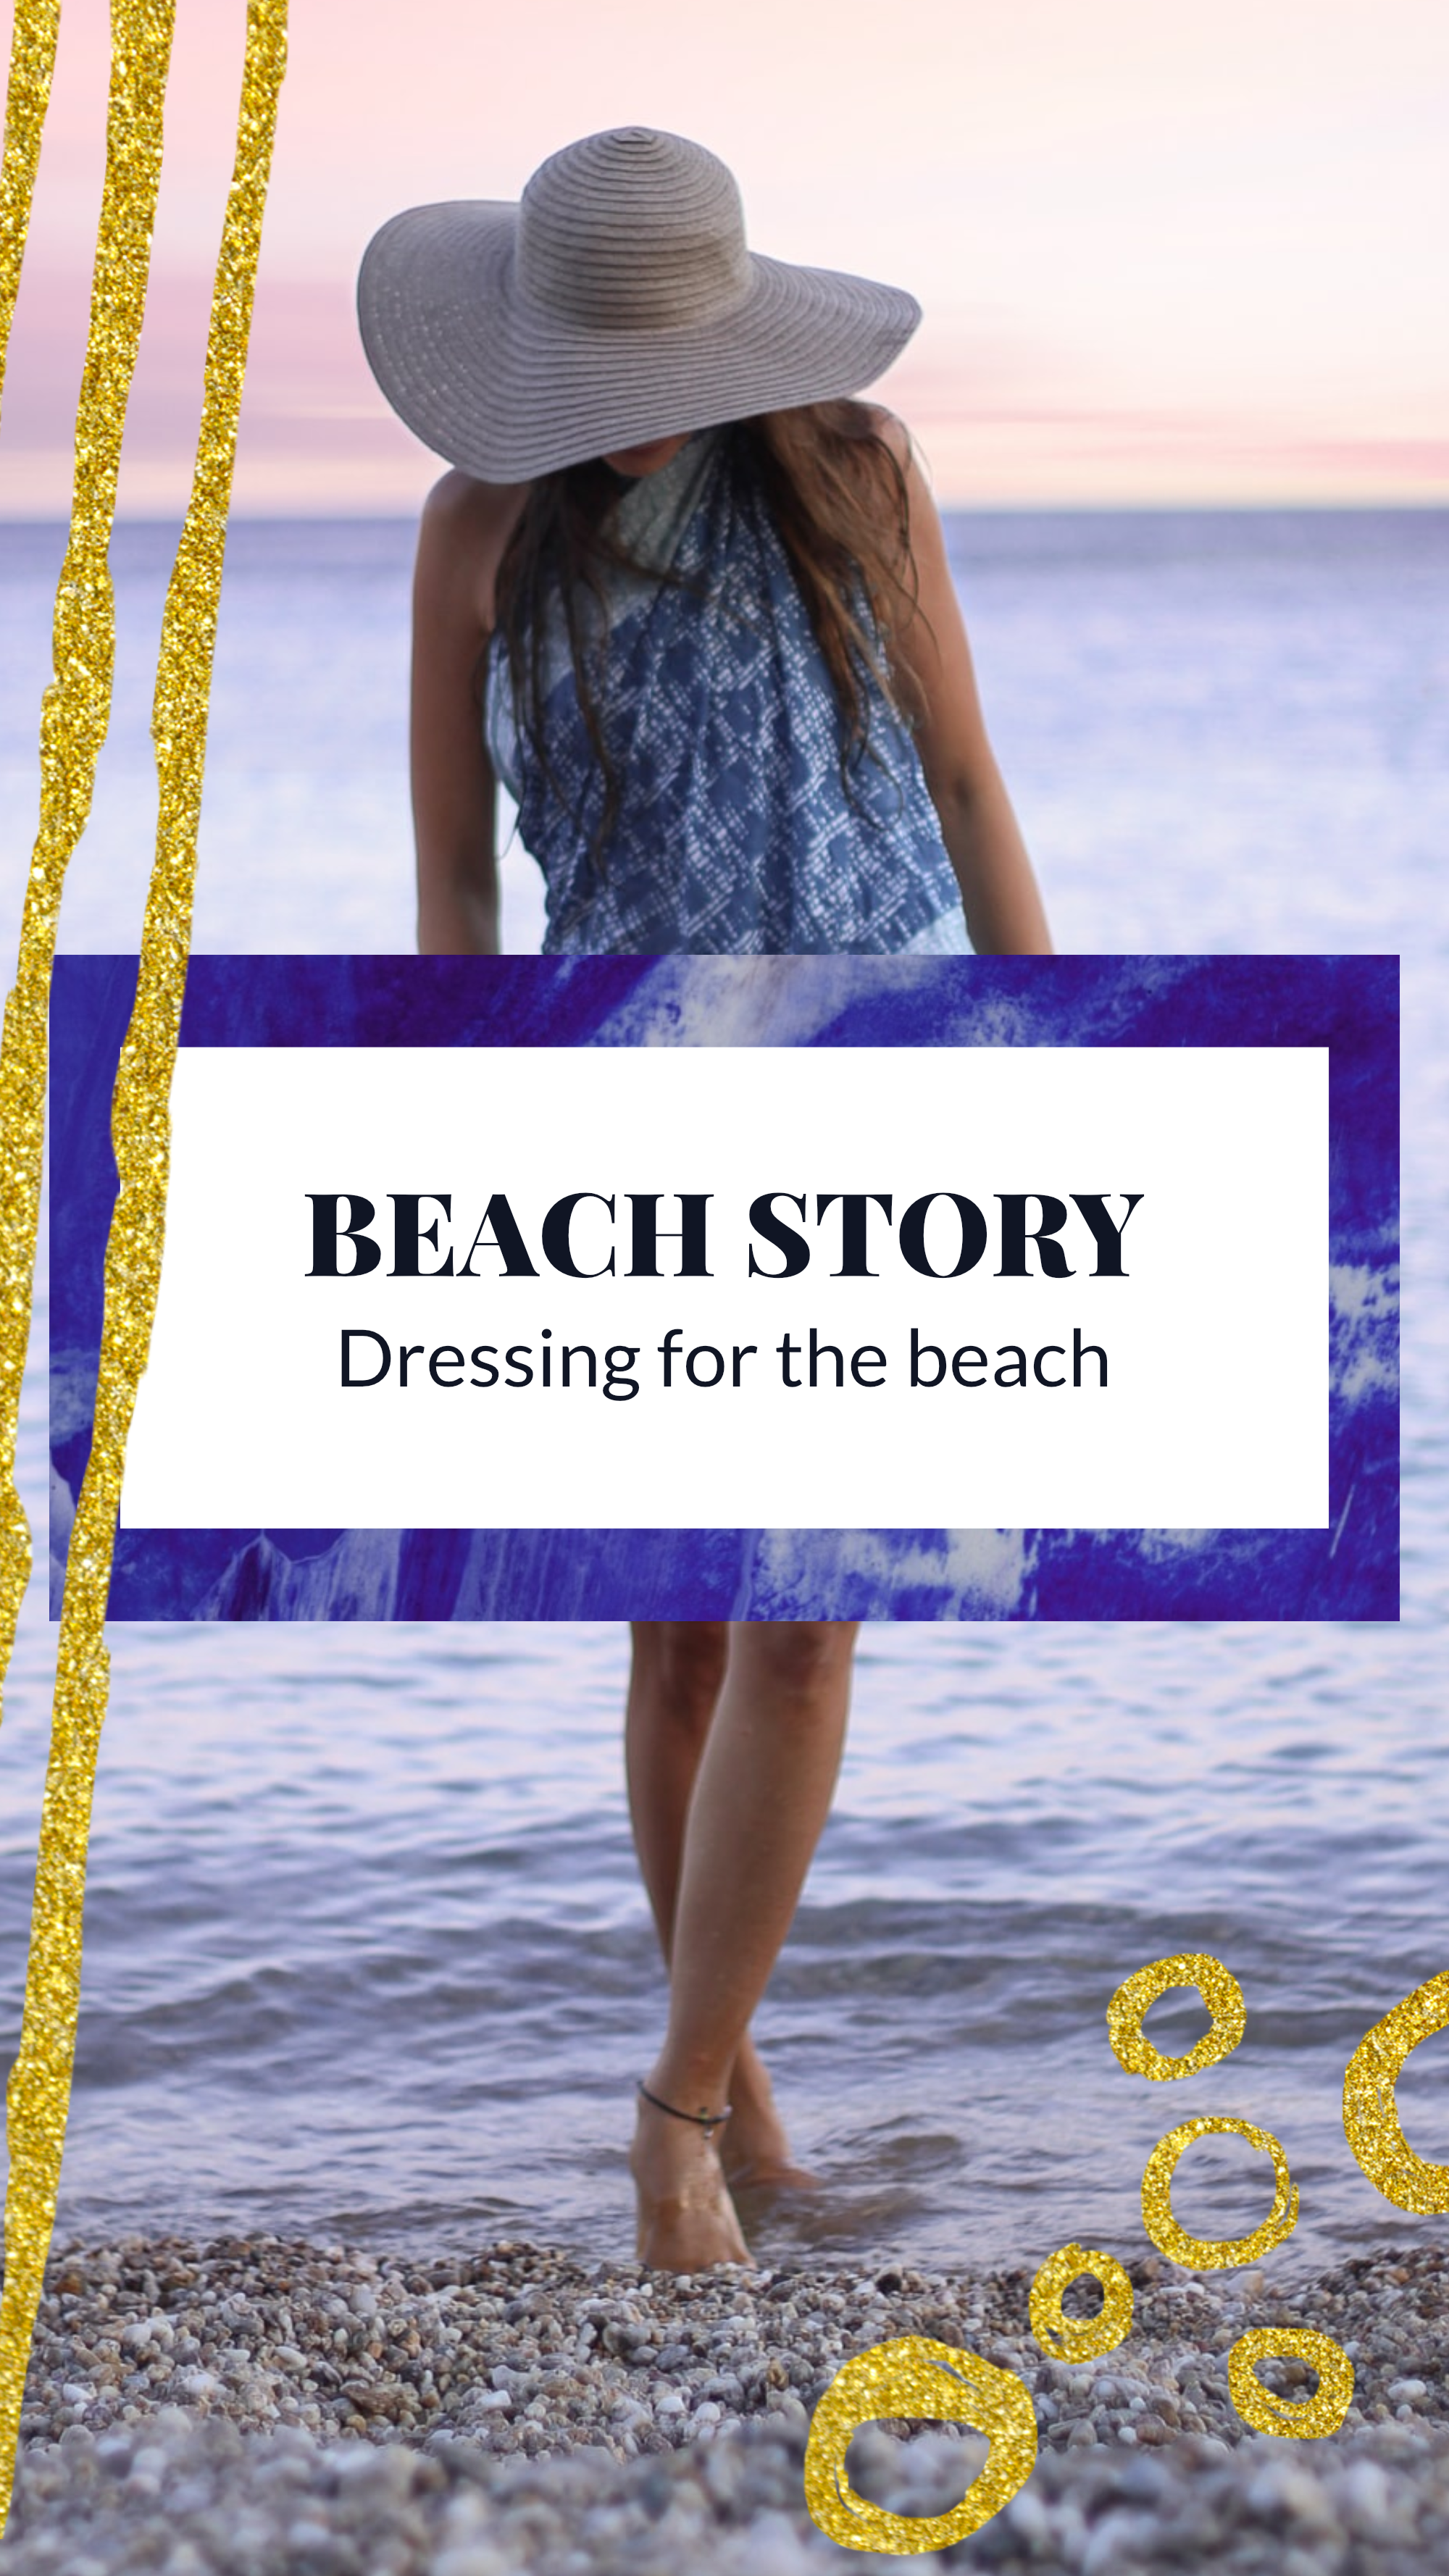 #bluegold collection - BEACH STORY Dressing for the beach Instagram Story Template